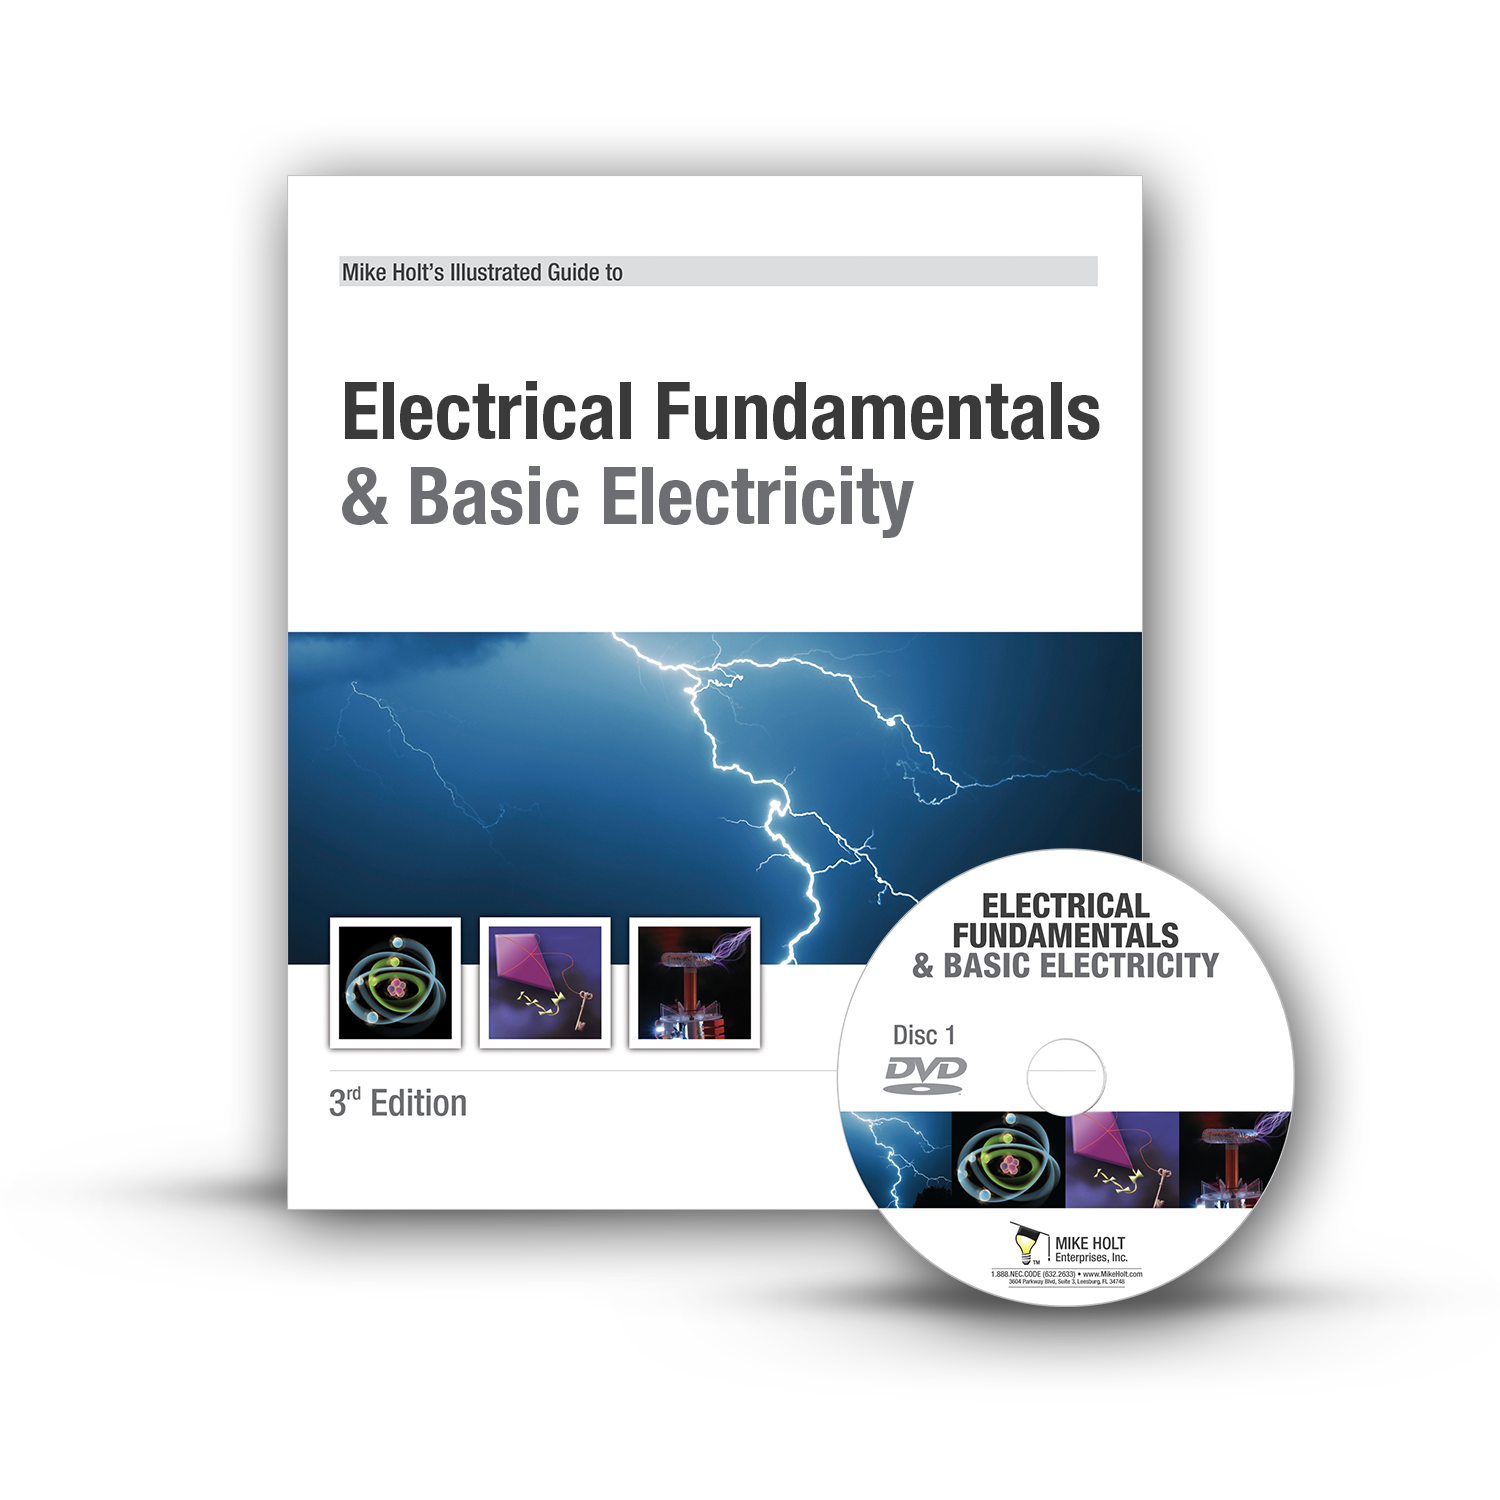 Base Electricit Electrical Engineering Tutorial Basic Electricity Snap Circuits Sound Kit Image One Xumpcom And Dvd Etd